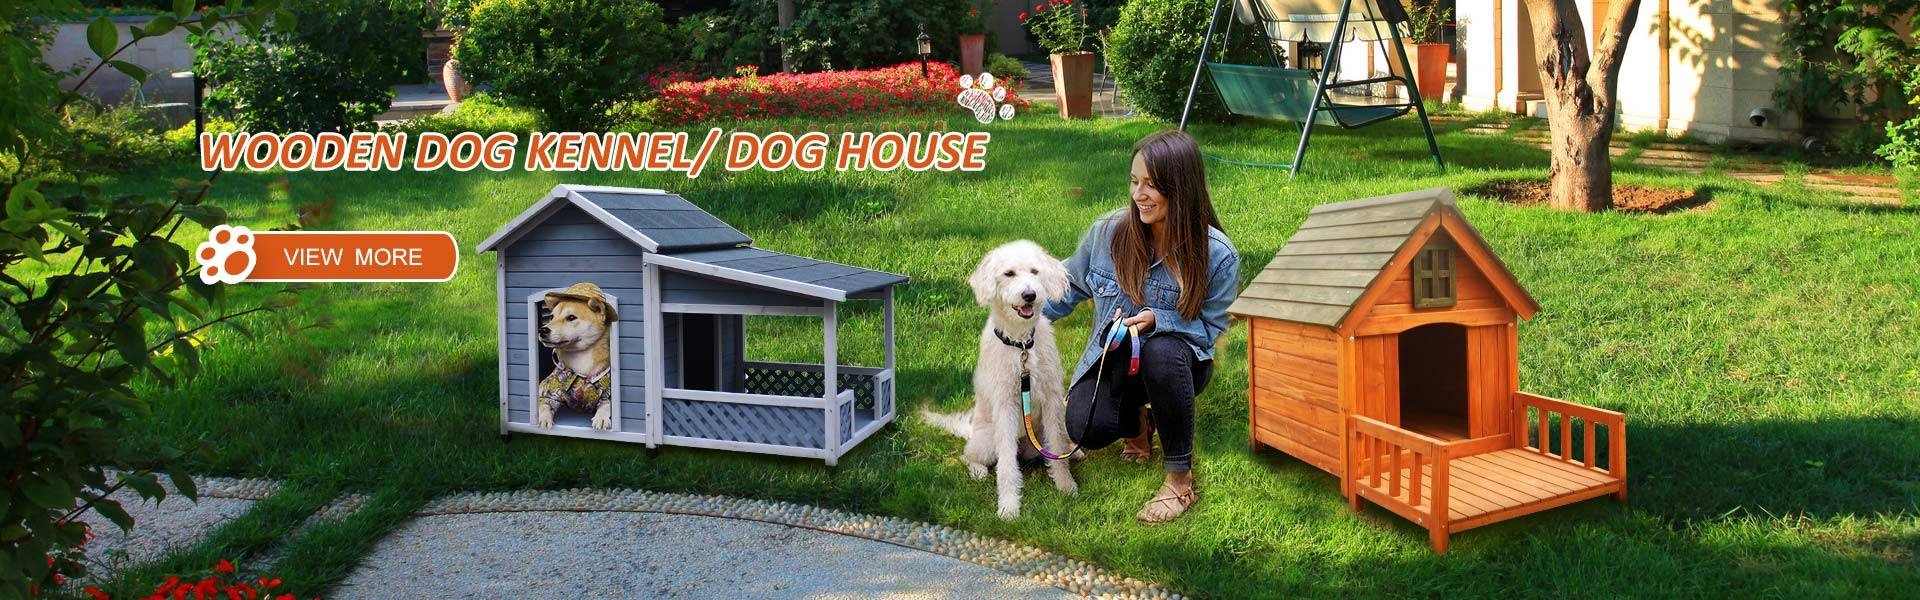 Wooden dog kennel / dog house